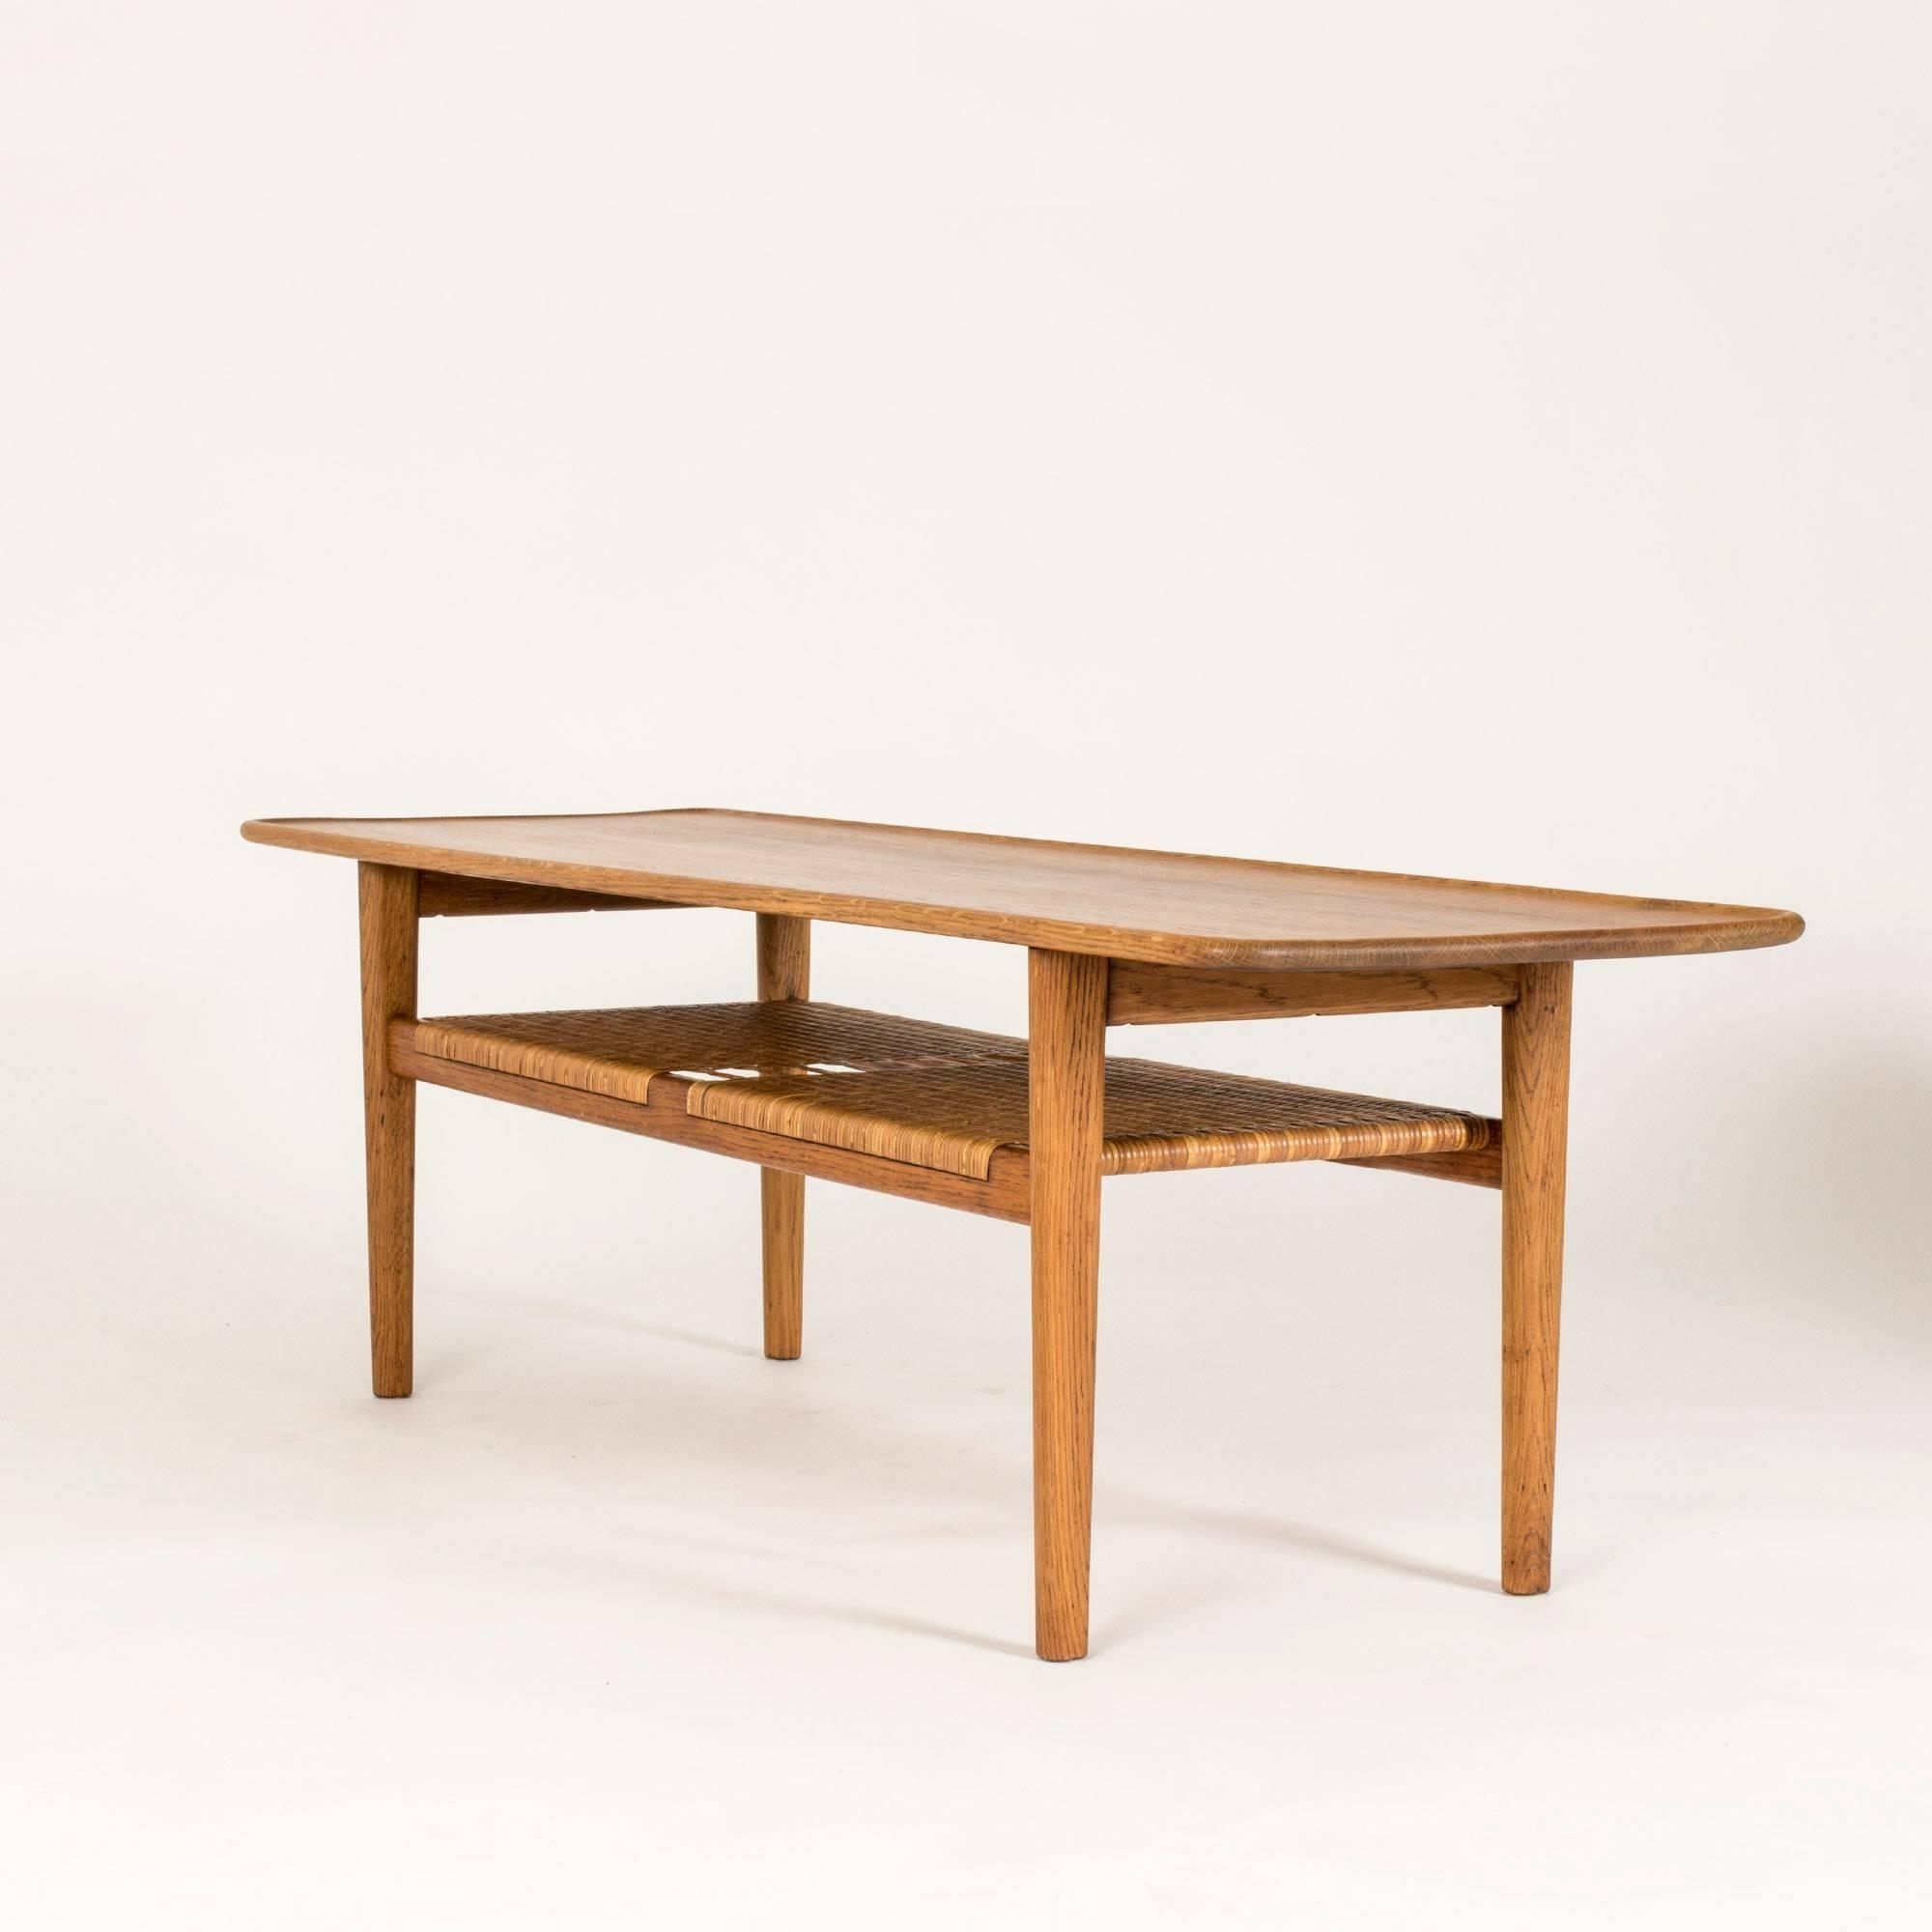 Widely Used Smoked Oak Coffee Tables With Regard To Smoked Oak And Rattan Coffee Tablehans J (View 13 of 20)